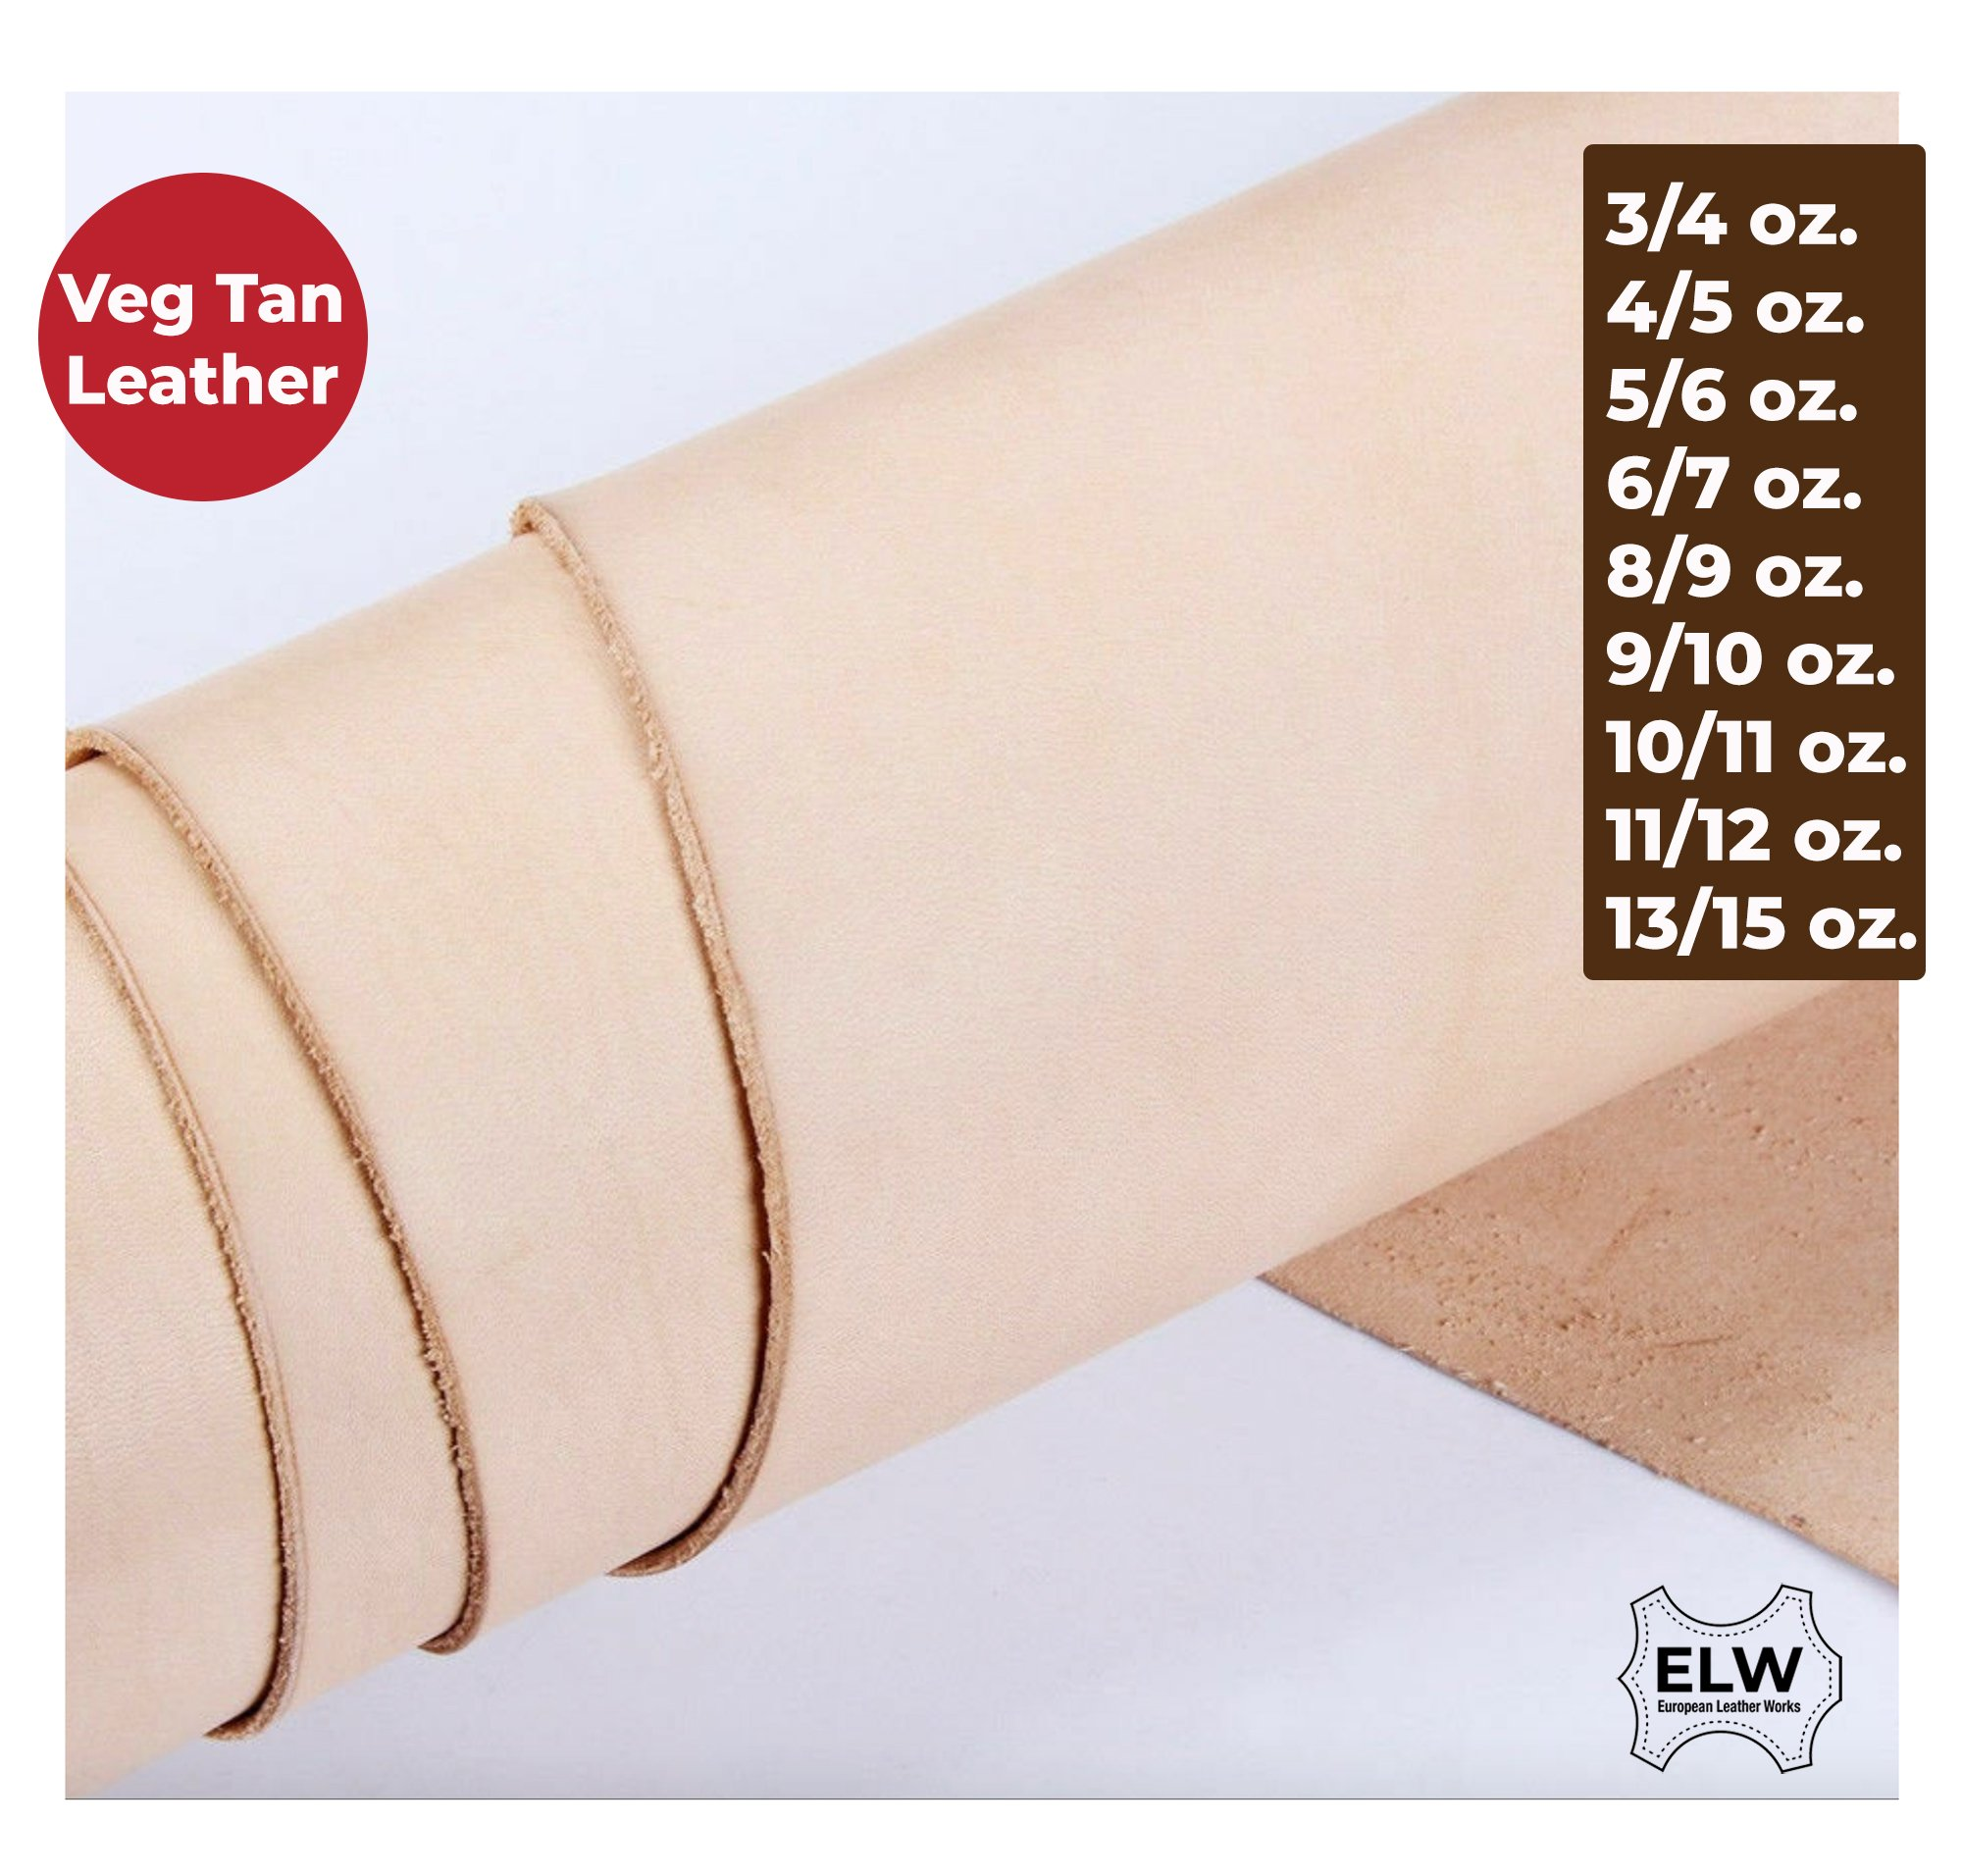 1.8-2mm ELW Tooling Full Grain Leather 4-6 SQ FT Vegetable Tanned 4-5 oz Thickness Pre-Cut Sizes 12 up to 12 Sq Ft Cowhide Full Grain Leather Craft Holsters Emboss Stamp